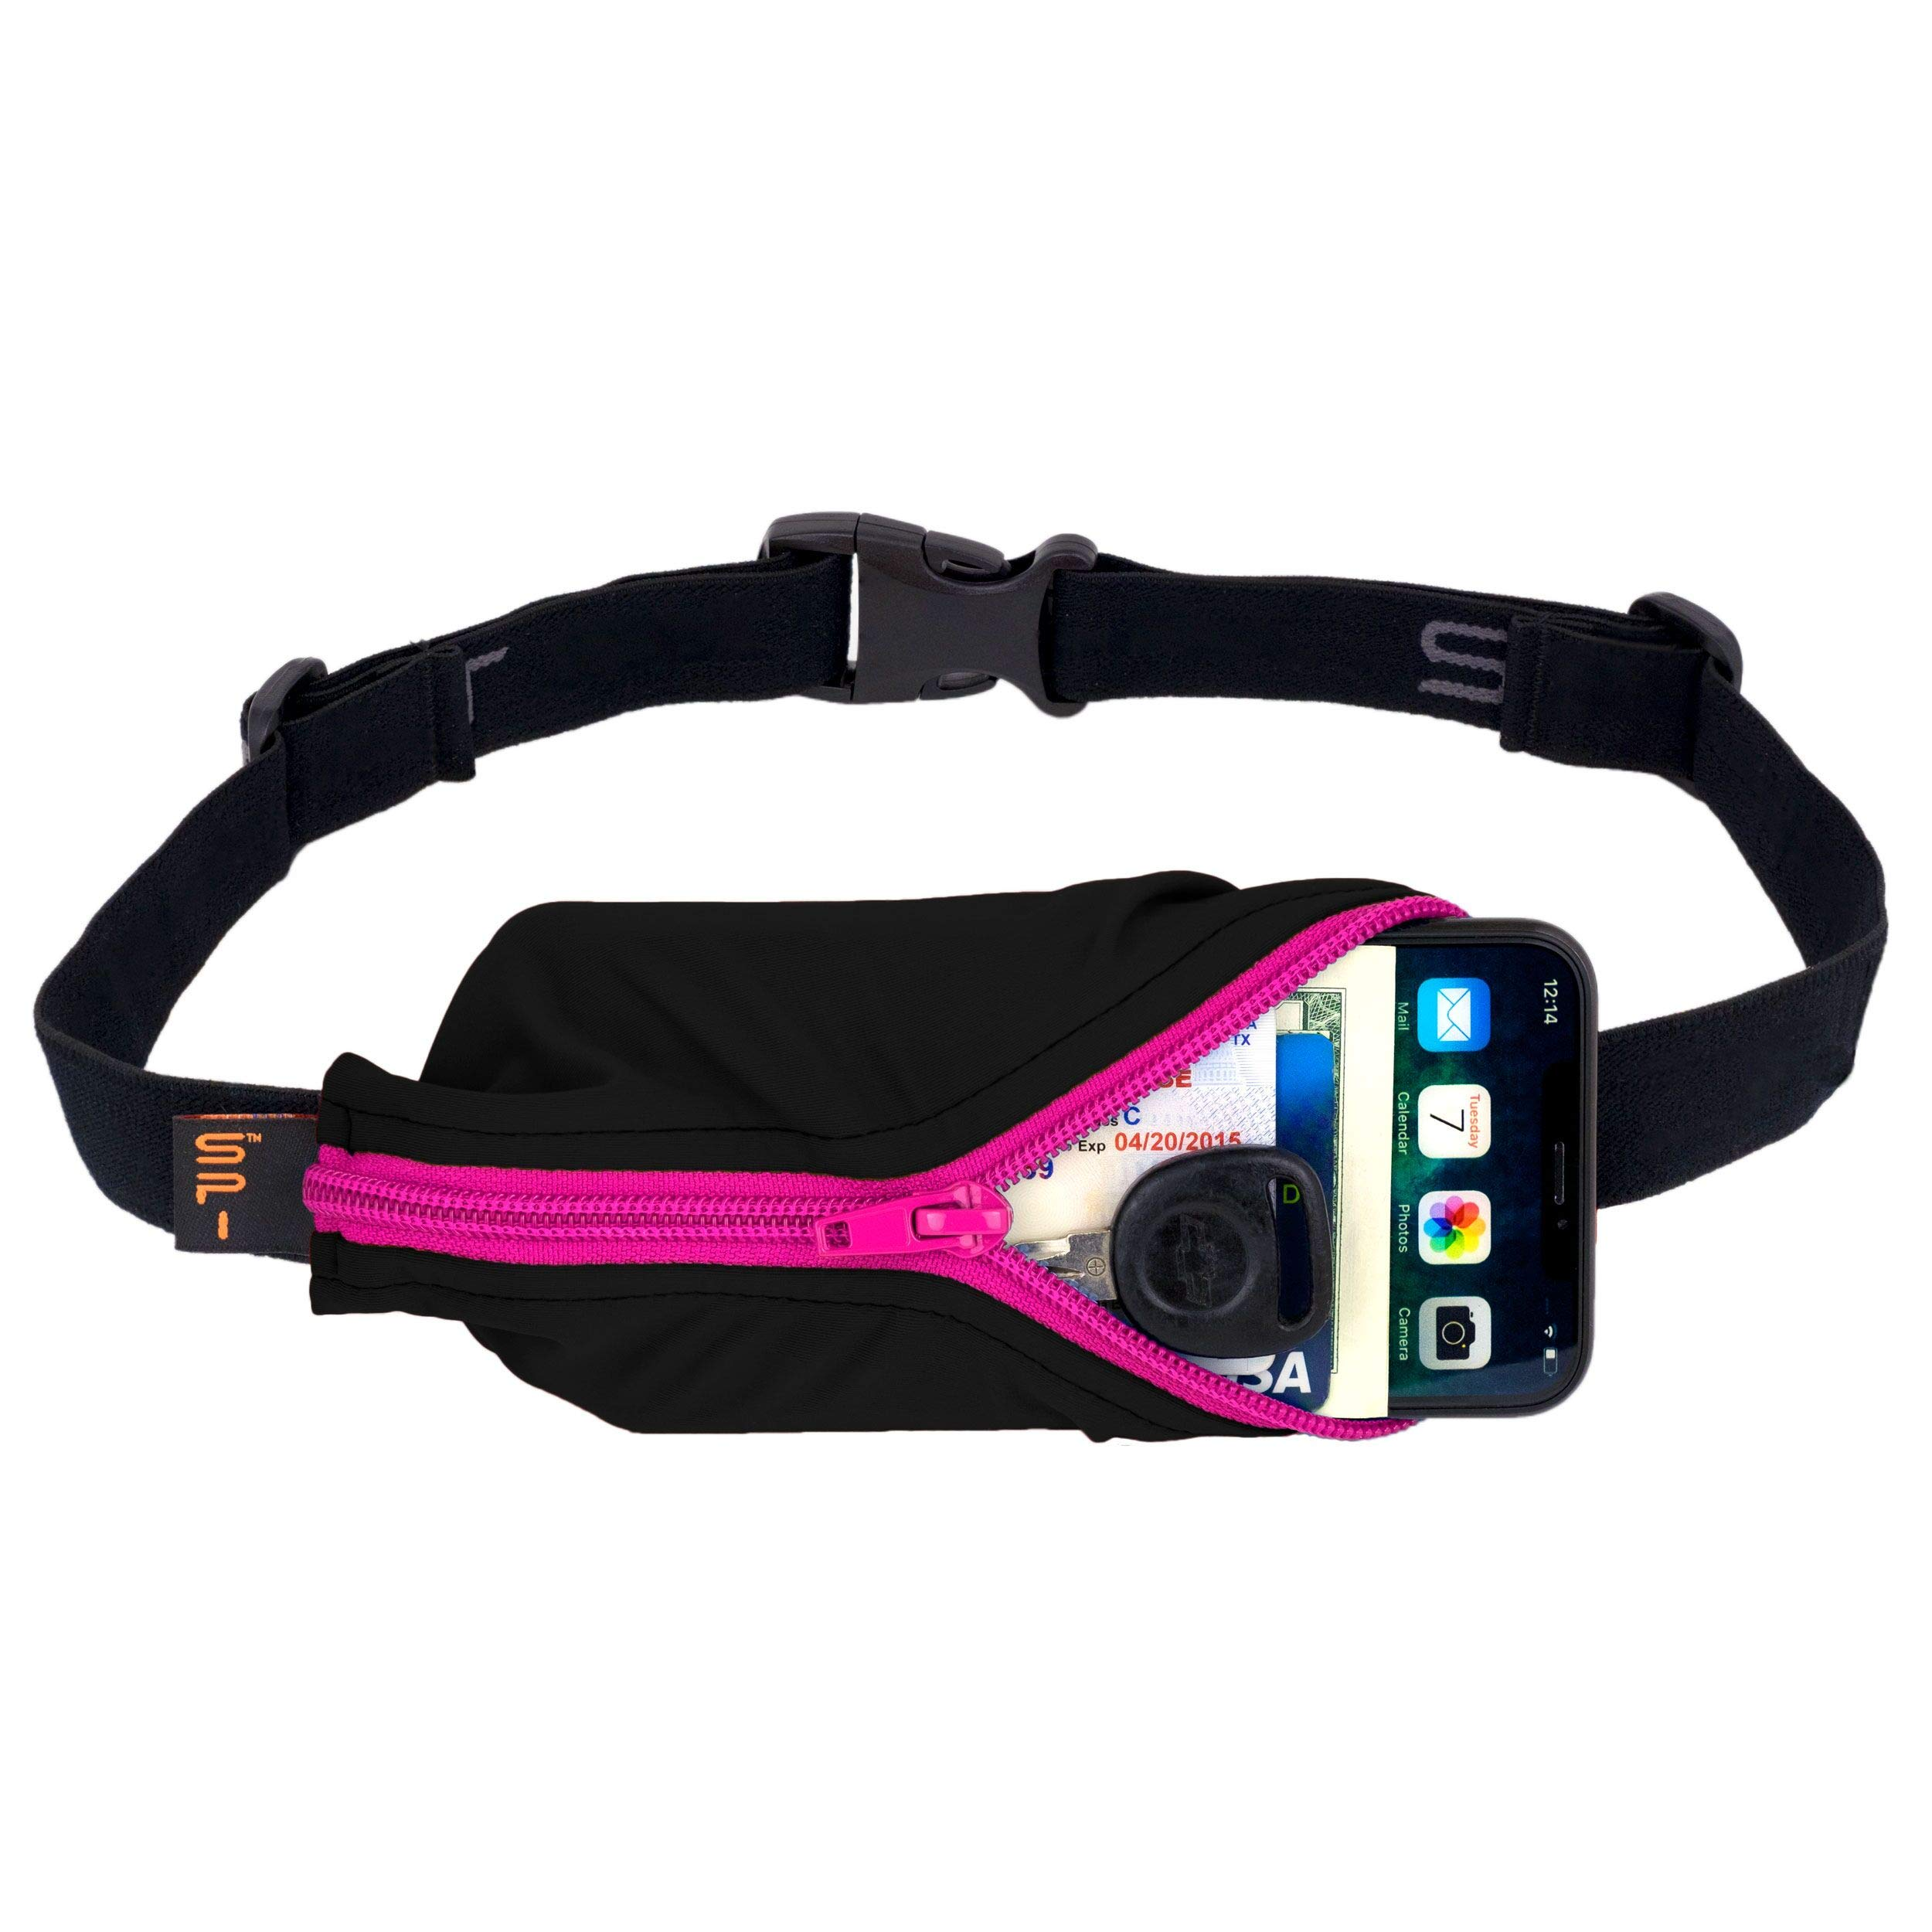 SPIbelt: Large Pocket No-Bounce Running Belt for Runners, Athletes and Adventurers - Fits iPhone 6+ and Other Large Phones - Hot Pink Zipper by SPIbelt